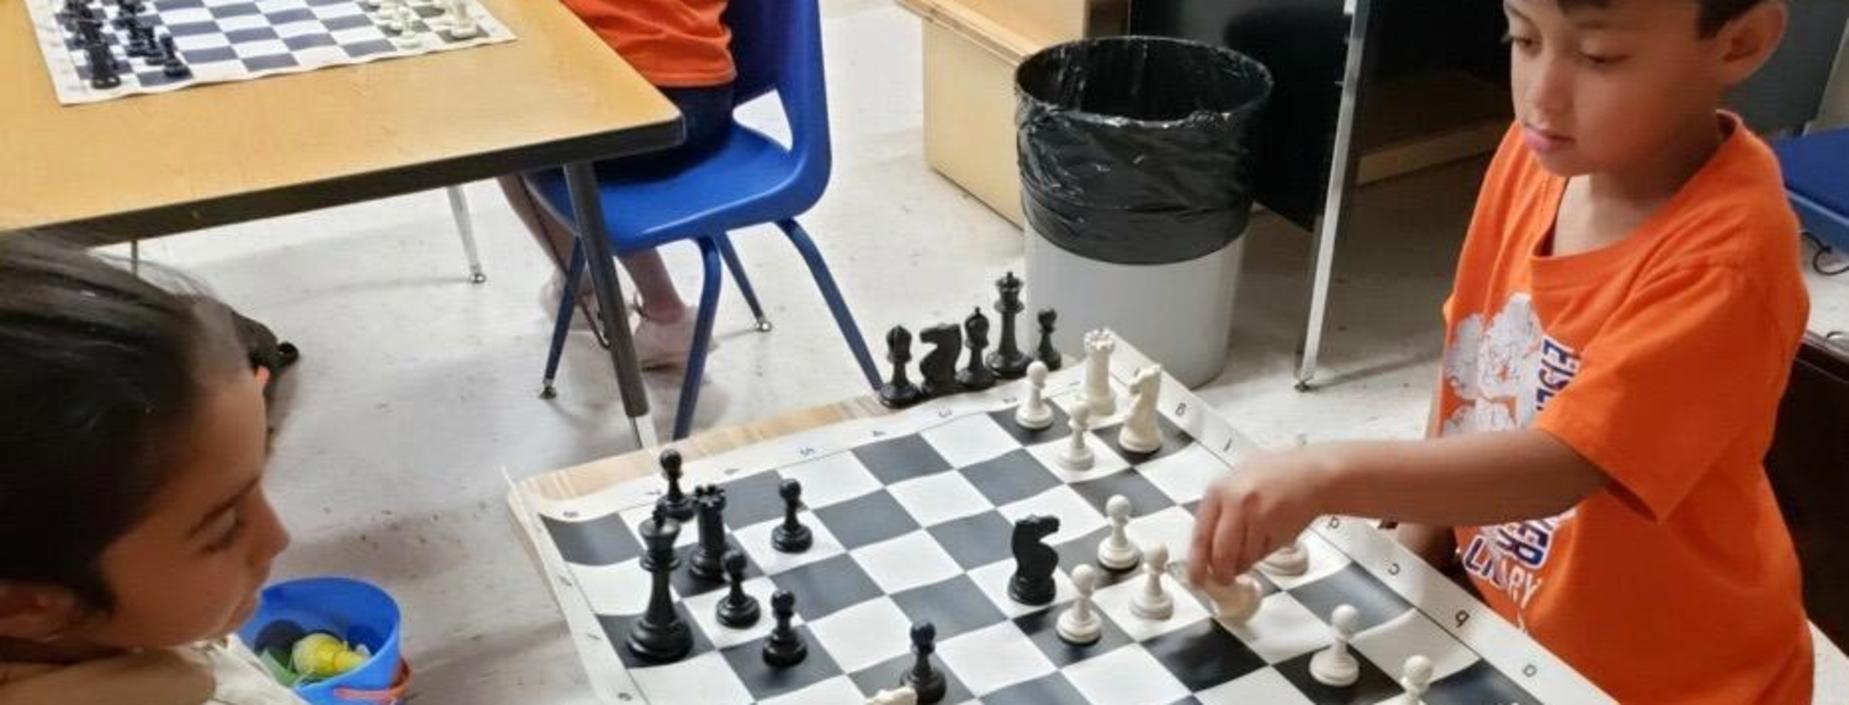 Image of students playing chess.